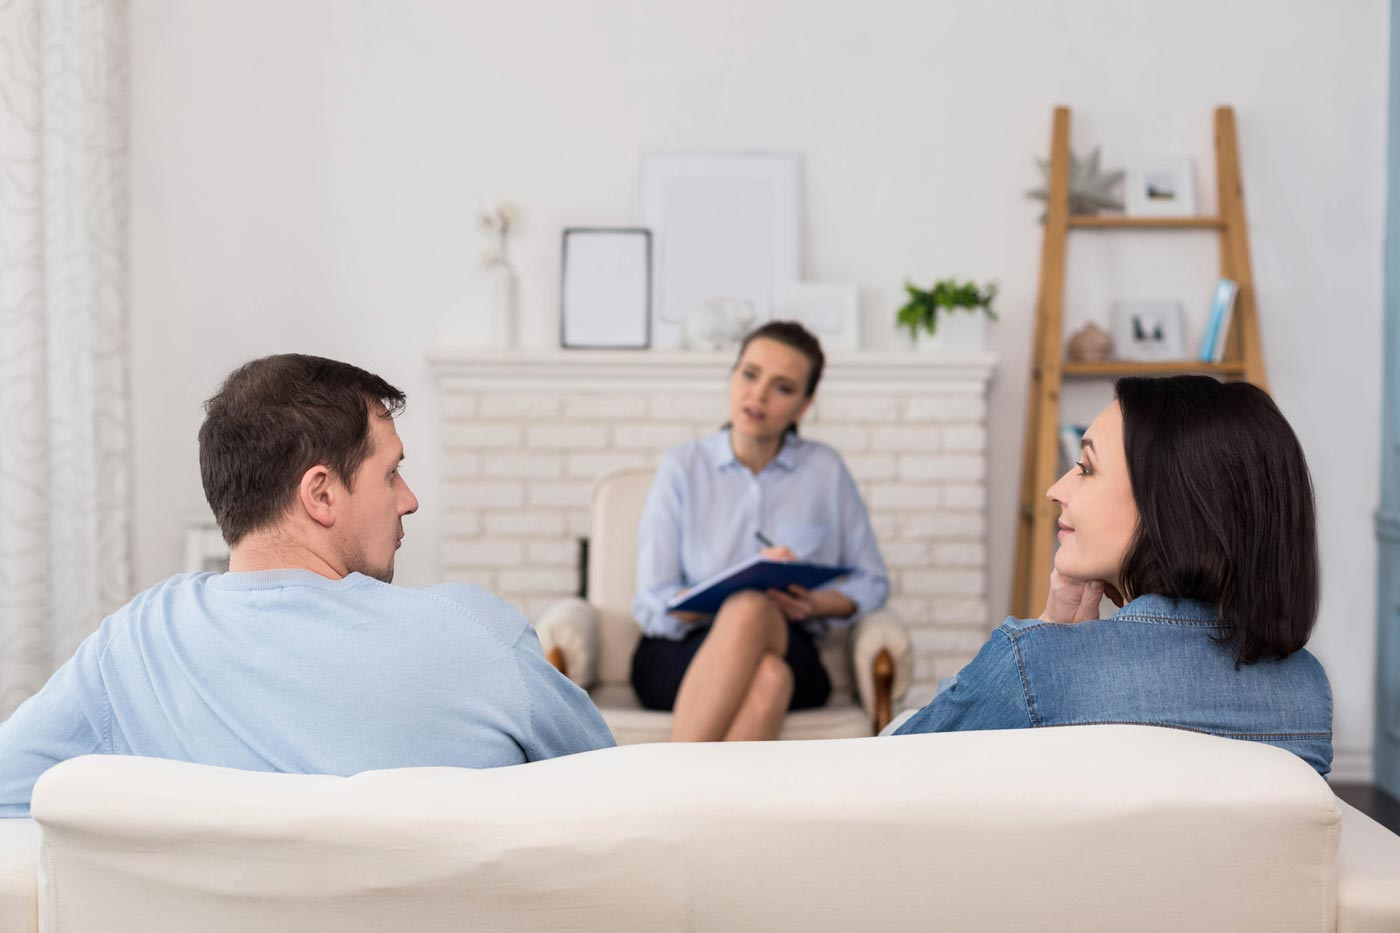 A couple during a session with counsellor in the middle sitting in a bright room